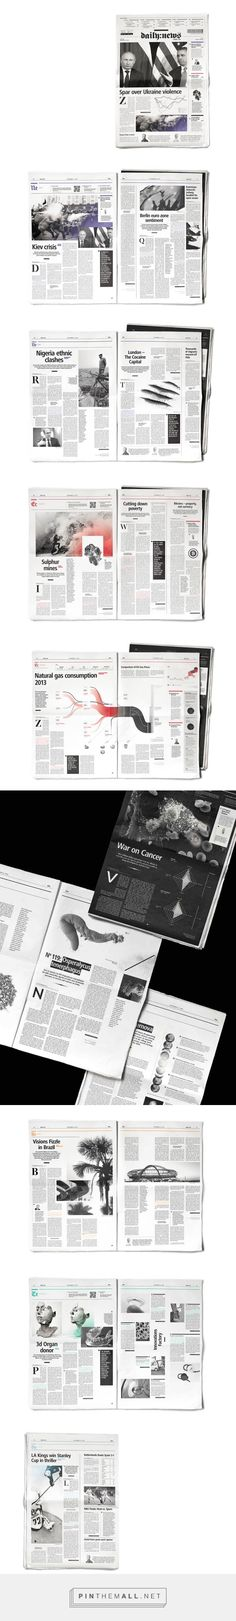 Editorial Design Inspiration: Daily News                                                                                                                                                                                 More